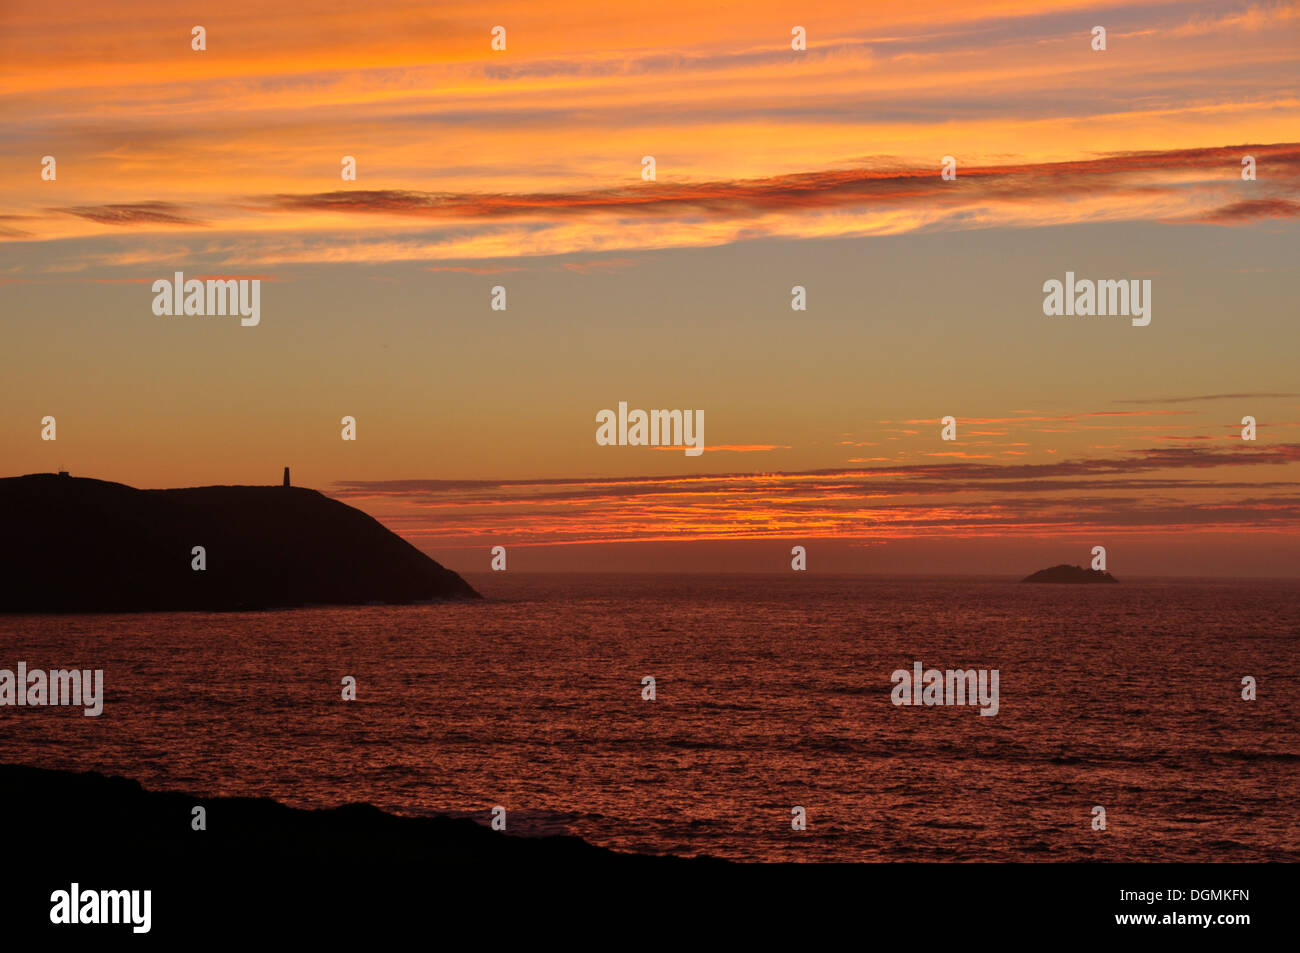 North Cornwall - sunset over silhouette Stepper Point - orange red and blue cloudscape  over crimson sea - twilight - Stock Image